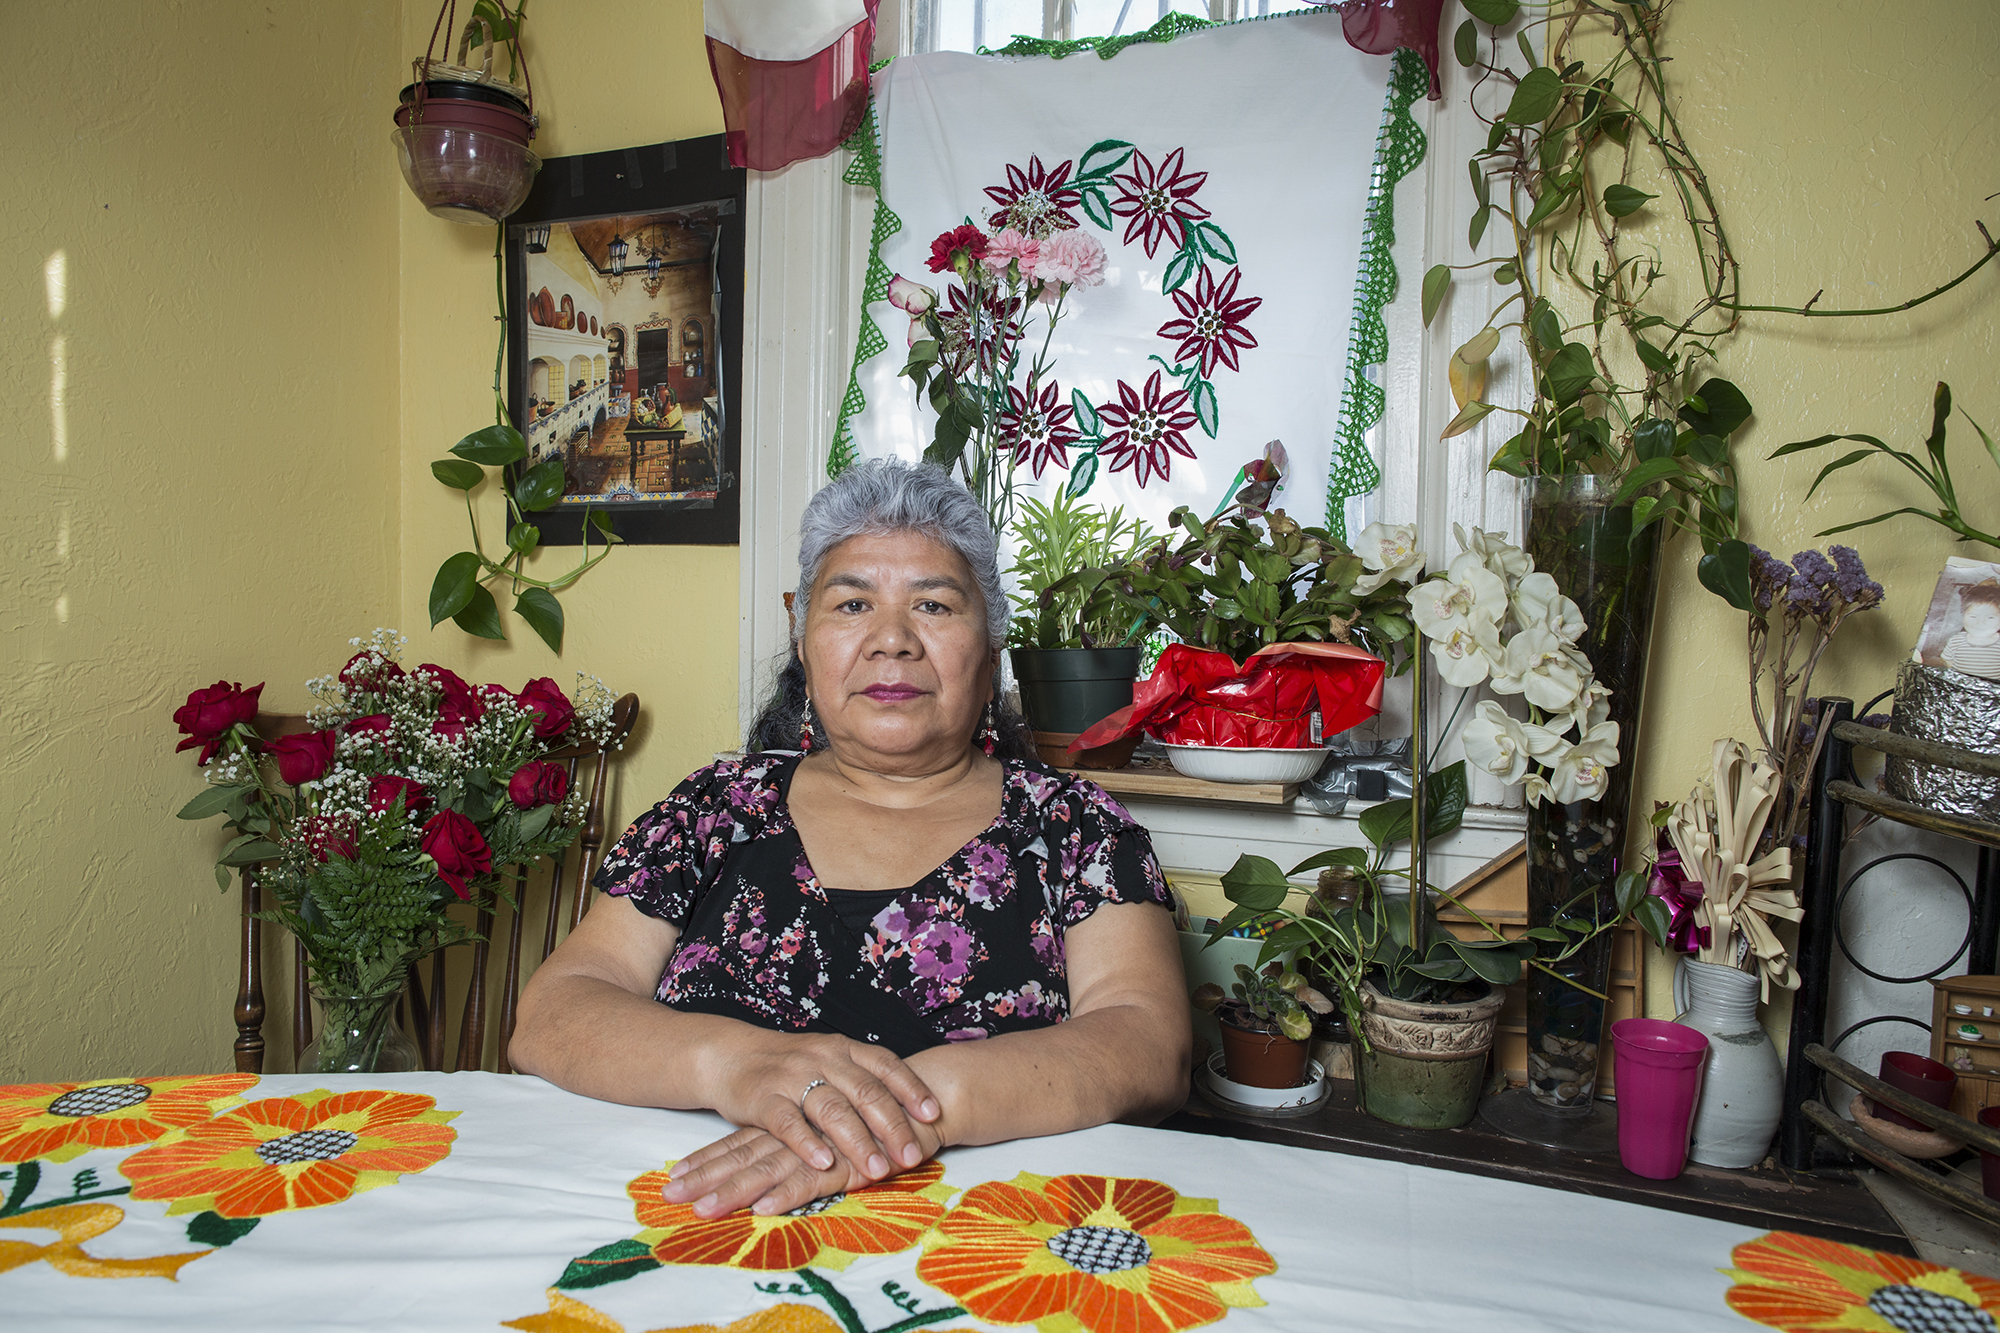 Honorina Moran is from Huajuapan de León, Oaxaca. She is 67 years old and lives in Long Island City, Queens, with her family. Honorina came to New York 12 years ago, crossing the Mexican border to reunite herself with her family because all of her daughters and grandchildren live in the United States.